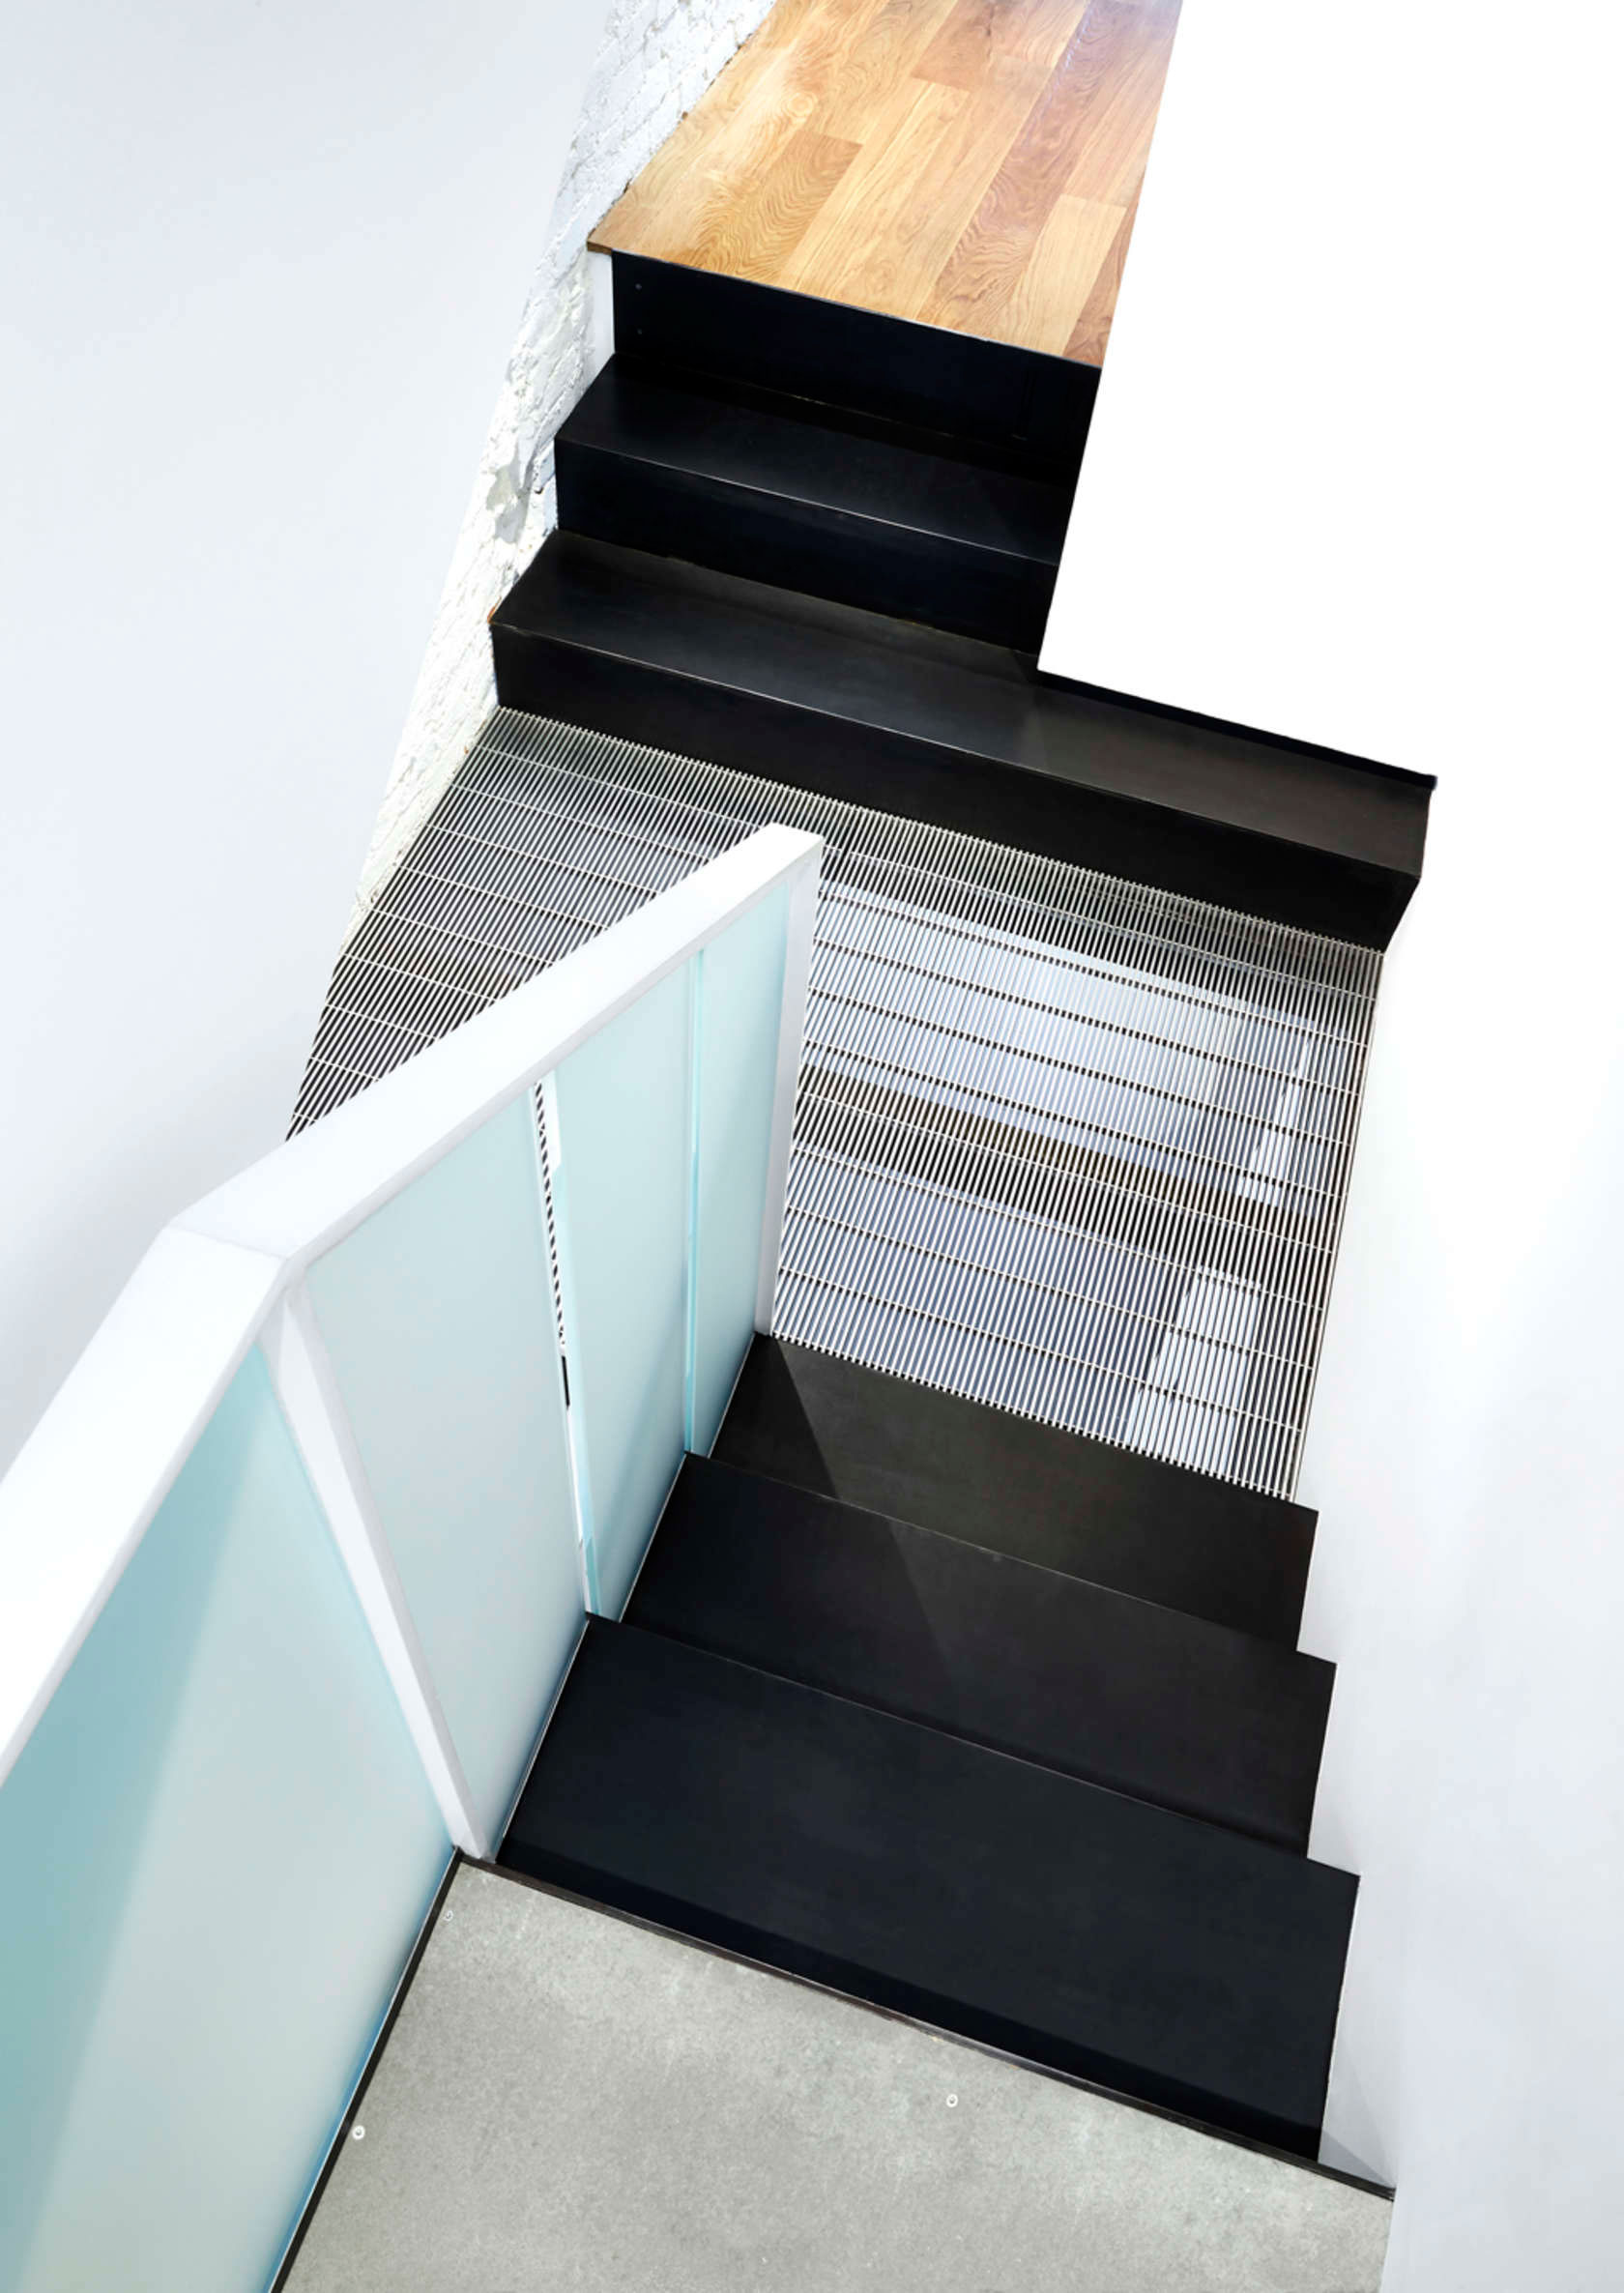 Salt and Pepper House in Washington, D.C. by KUBE Architecture-13